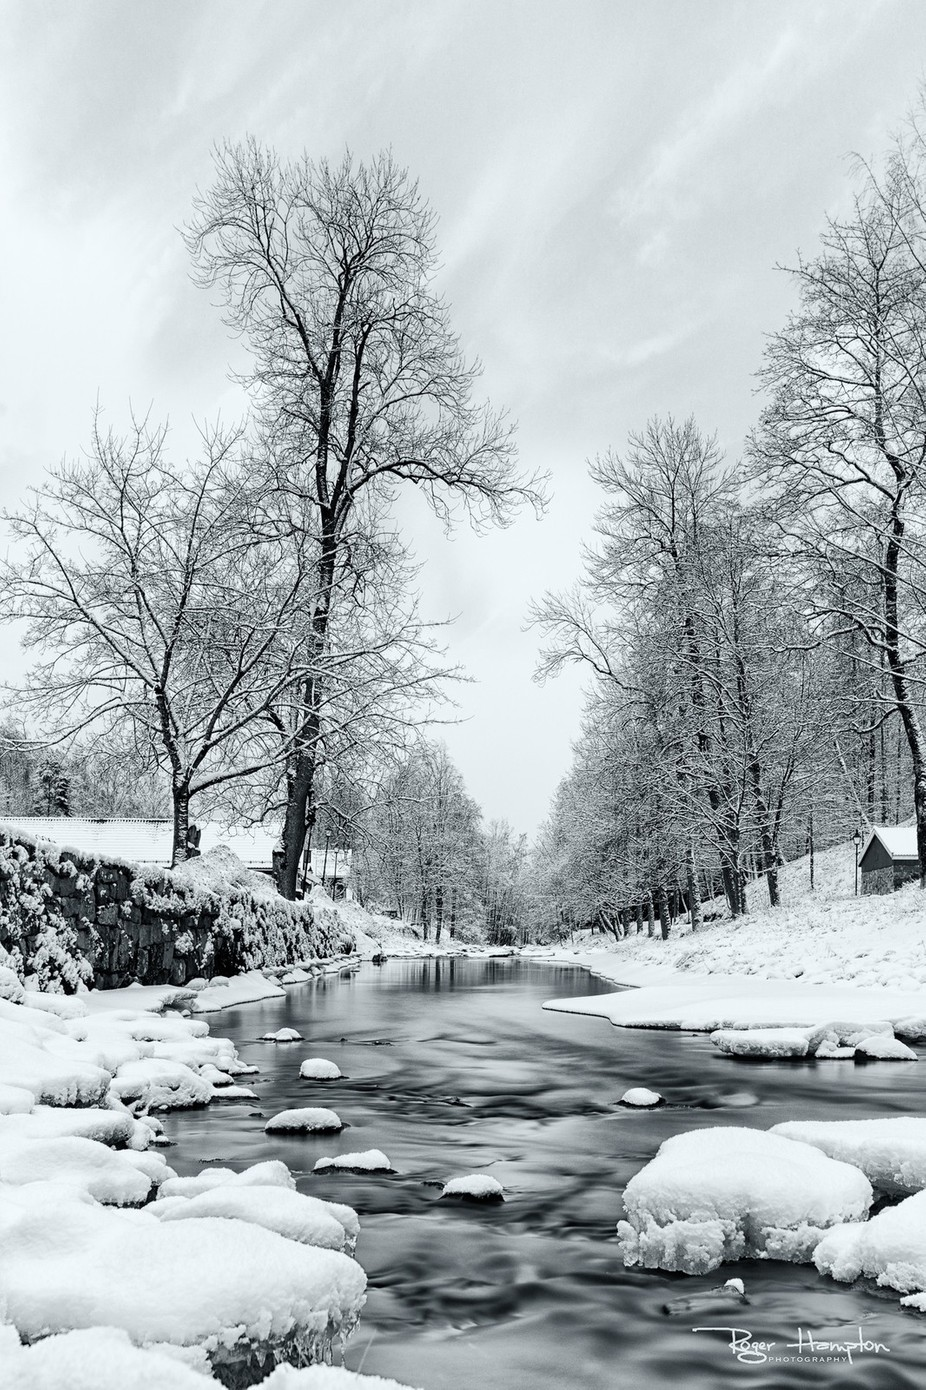 cold-waters-BW by rogerhampton - Winter Long Exposures Photo Contest